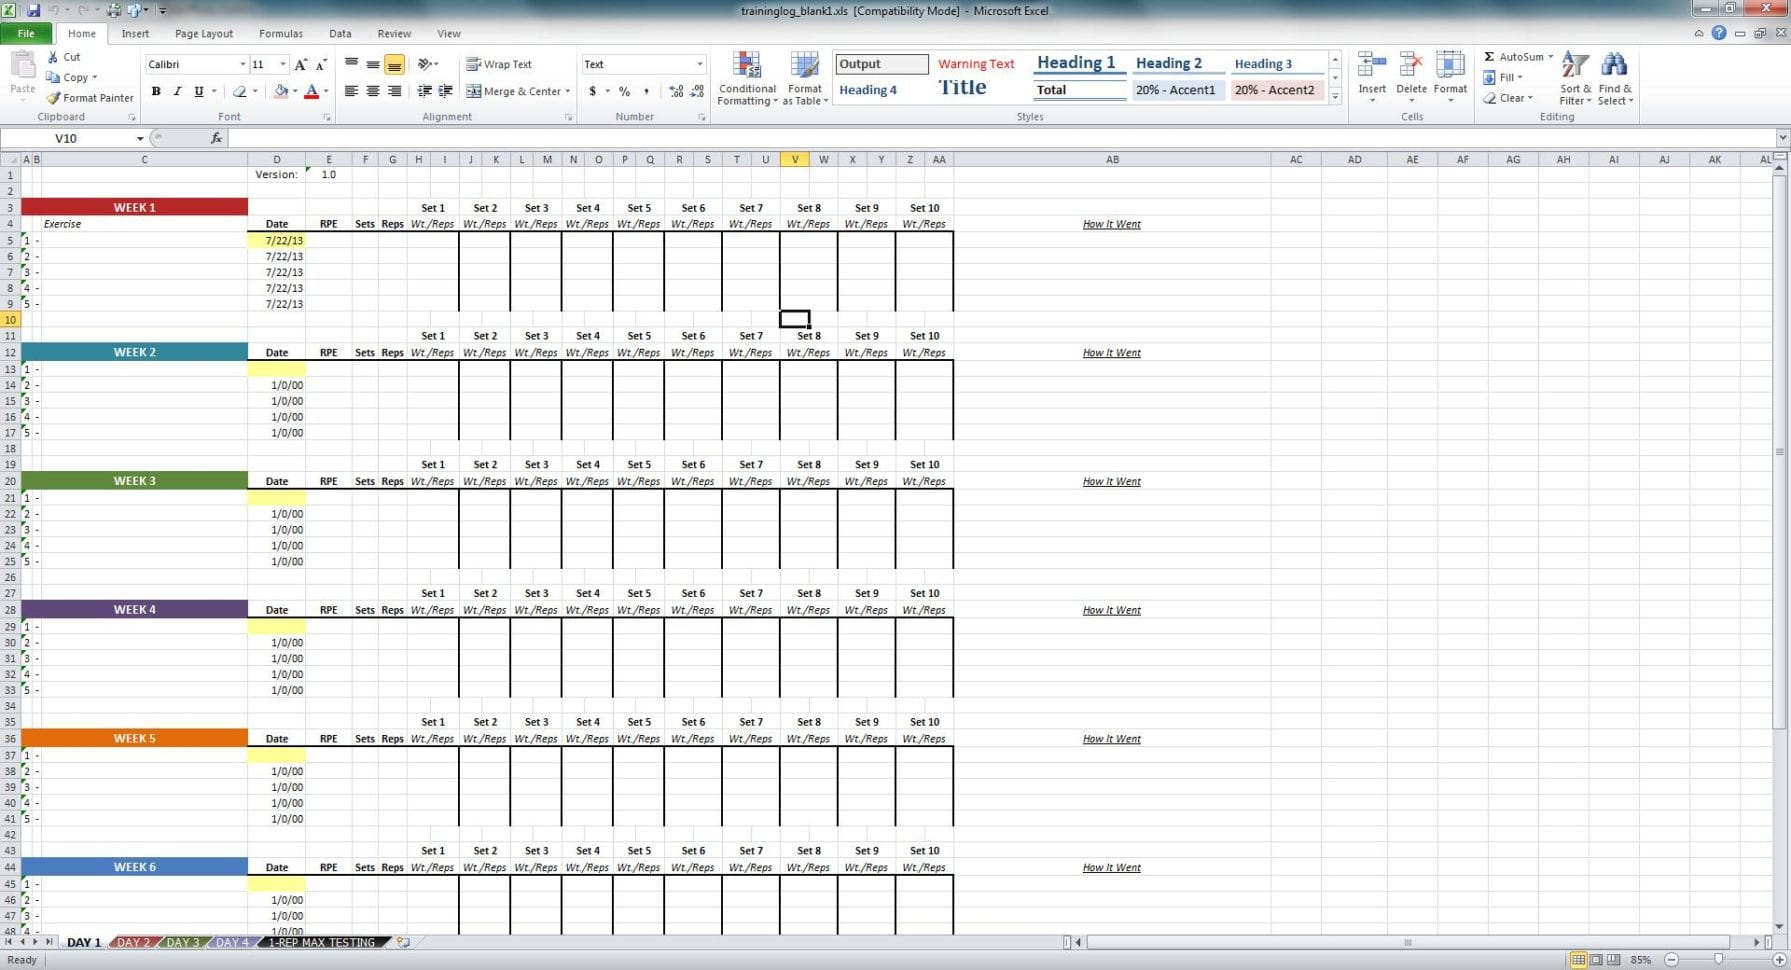 Excel Training Matrix Examples Spreadsheets Employee Attendance Tracker Excel Template Excel Template Training Training Spreadsheet Example Free Annual Leave Spreadsheet Excel Template Leave Tracker Excel Template Employee Training Spreadsheet Template Excel  Excel Training Matrix Examples Spreadsheets Training Spreadsheet Template Spreadsheet Templates for Busines